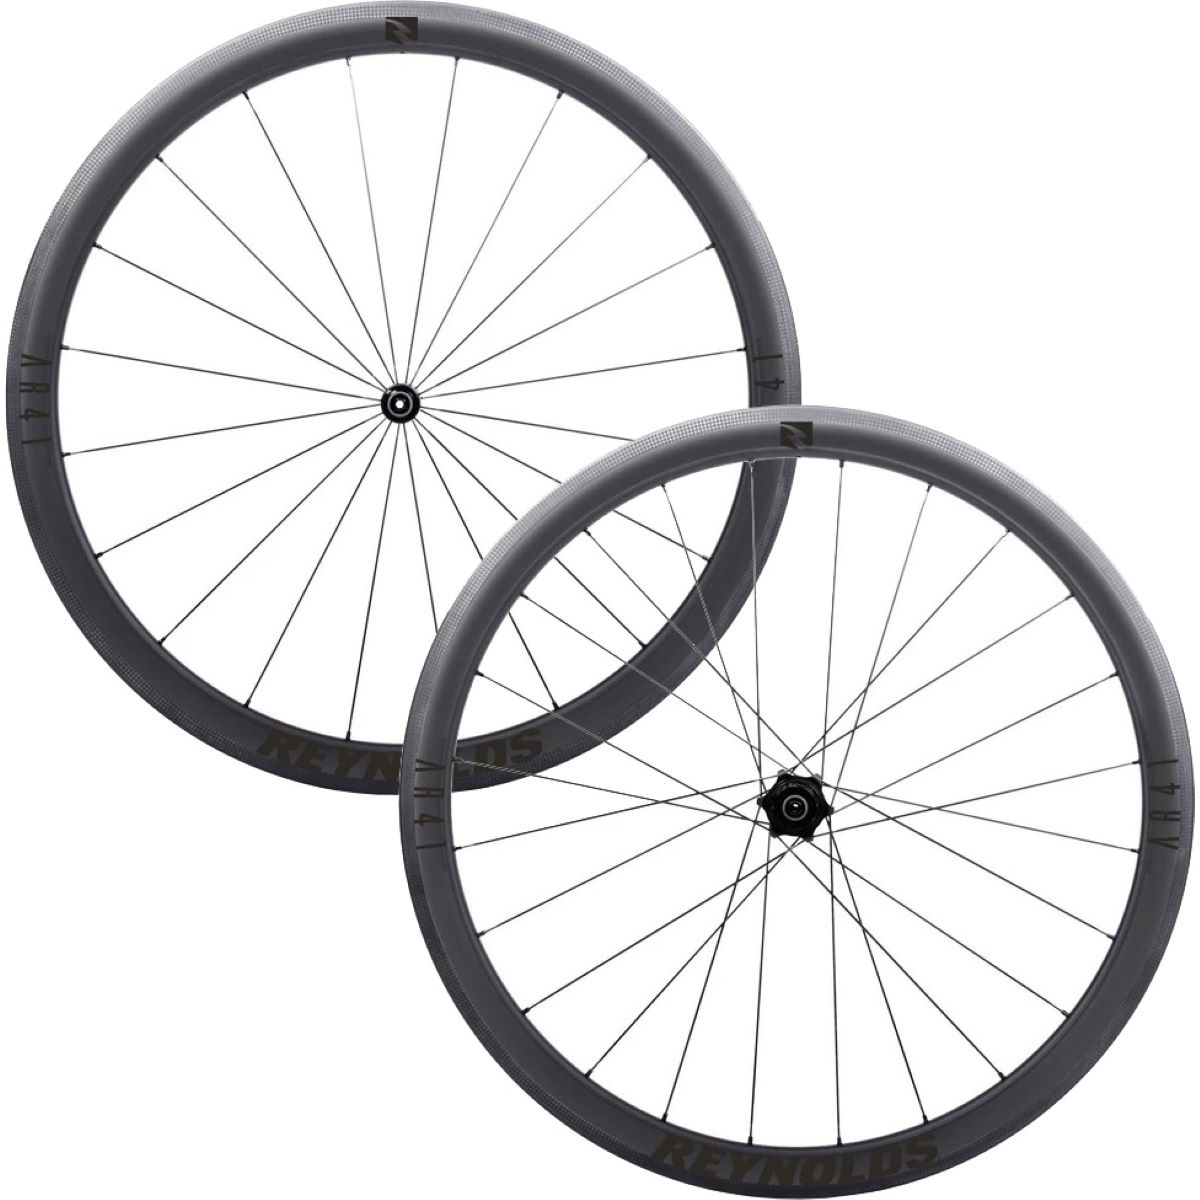 Reynolds Reynolds AR 41 Carbon Road Wheelset   Wheel Sets